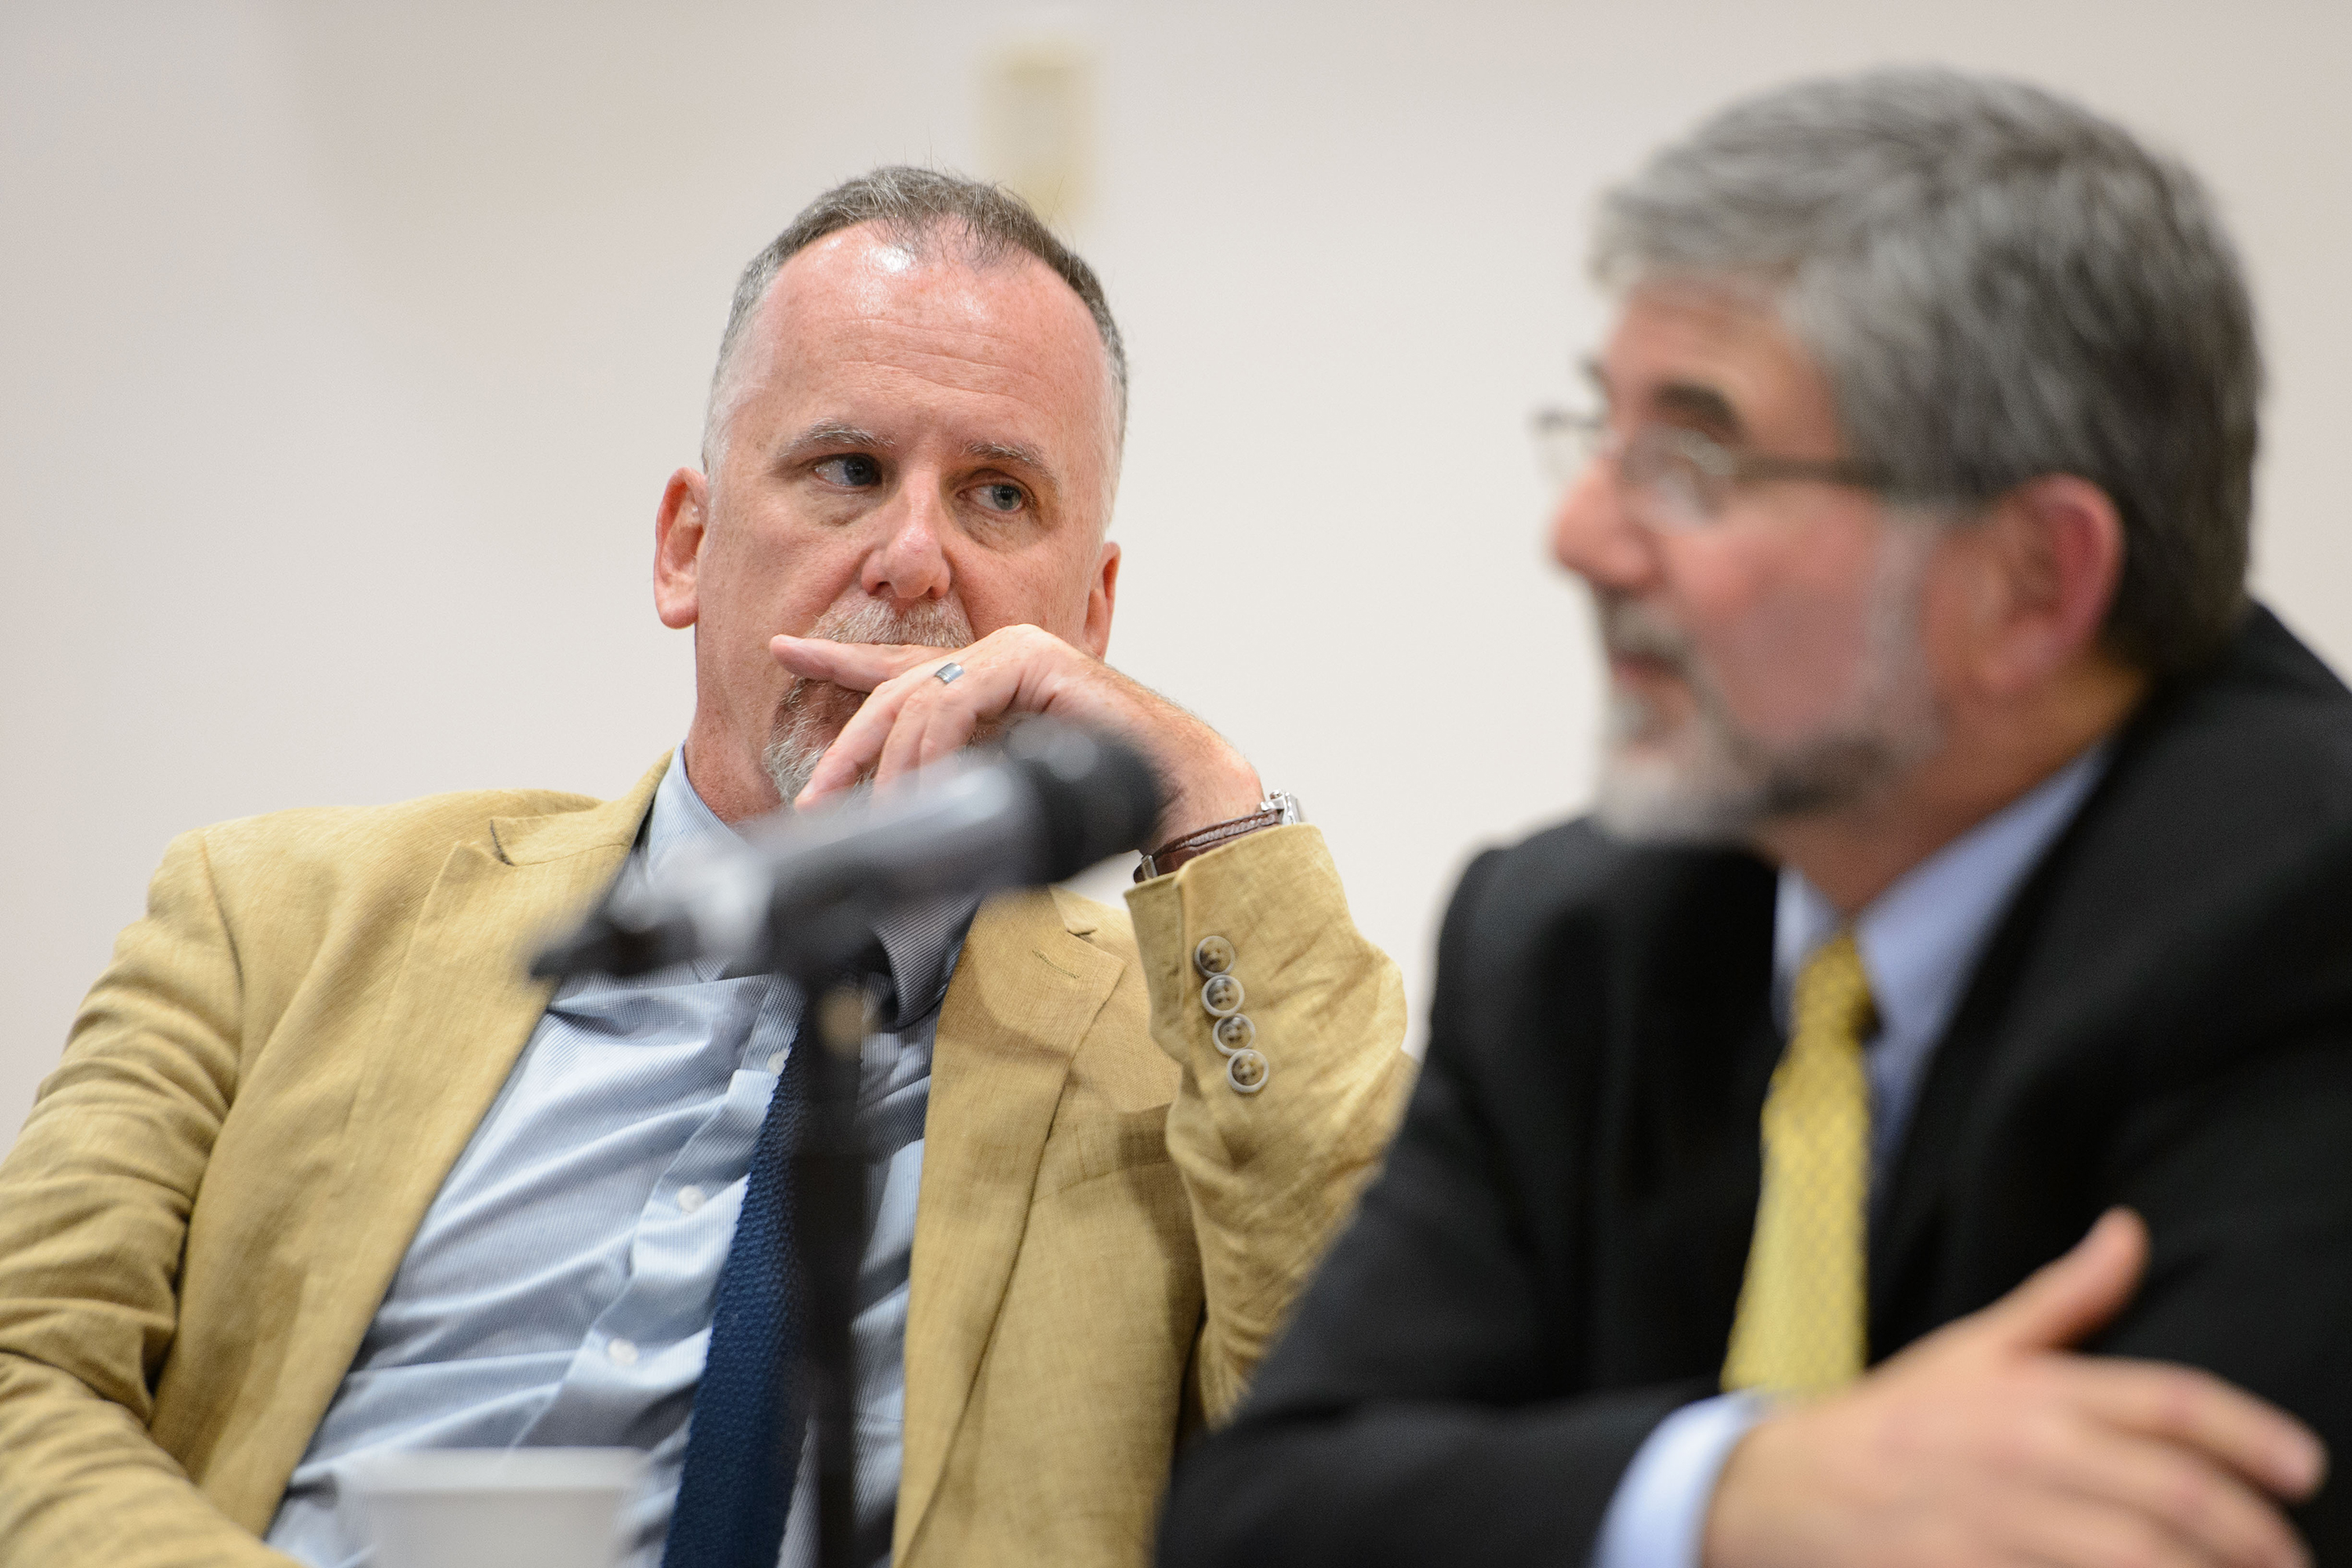 Michael Patrick Lynch, professor of philosophy and director of the UConn Humanities Institute, left, listens while Paul Herrnson, professor of political science, answers a question during a panel discussion on the presidential election at an event held at the Hartford Public Library on Sept. 22, 2016. (Peter Morenus/UConn Photo)